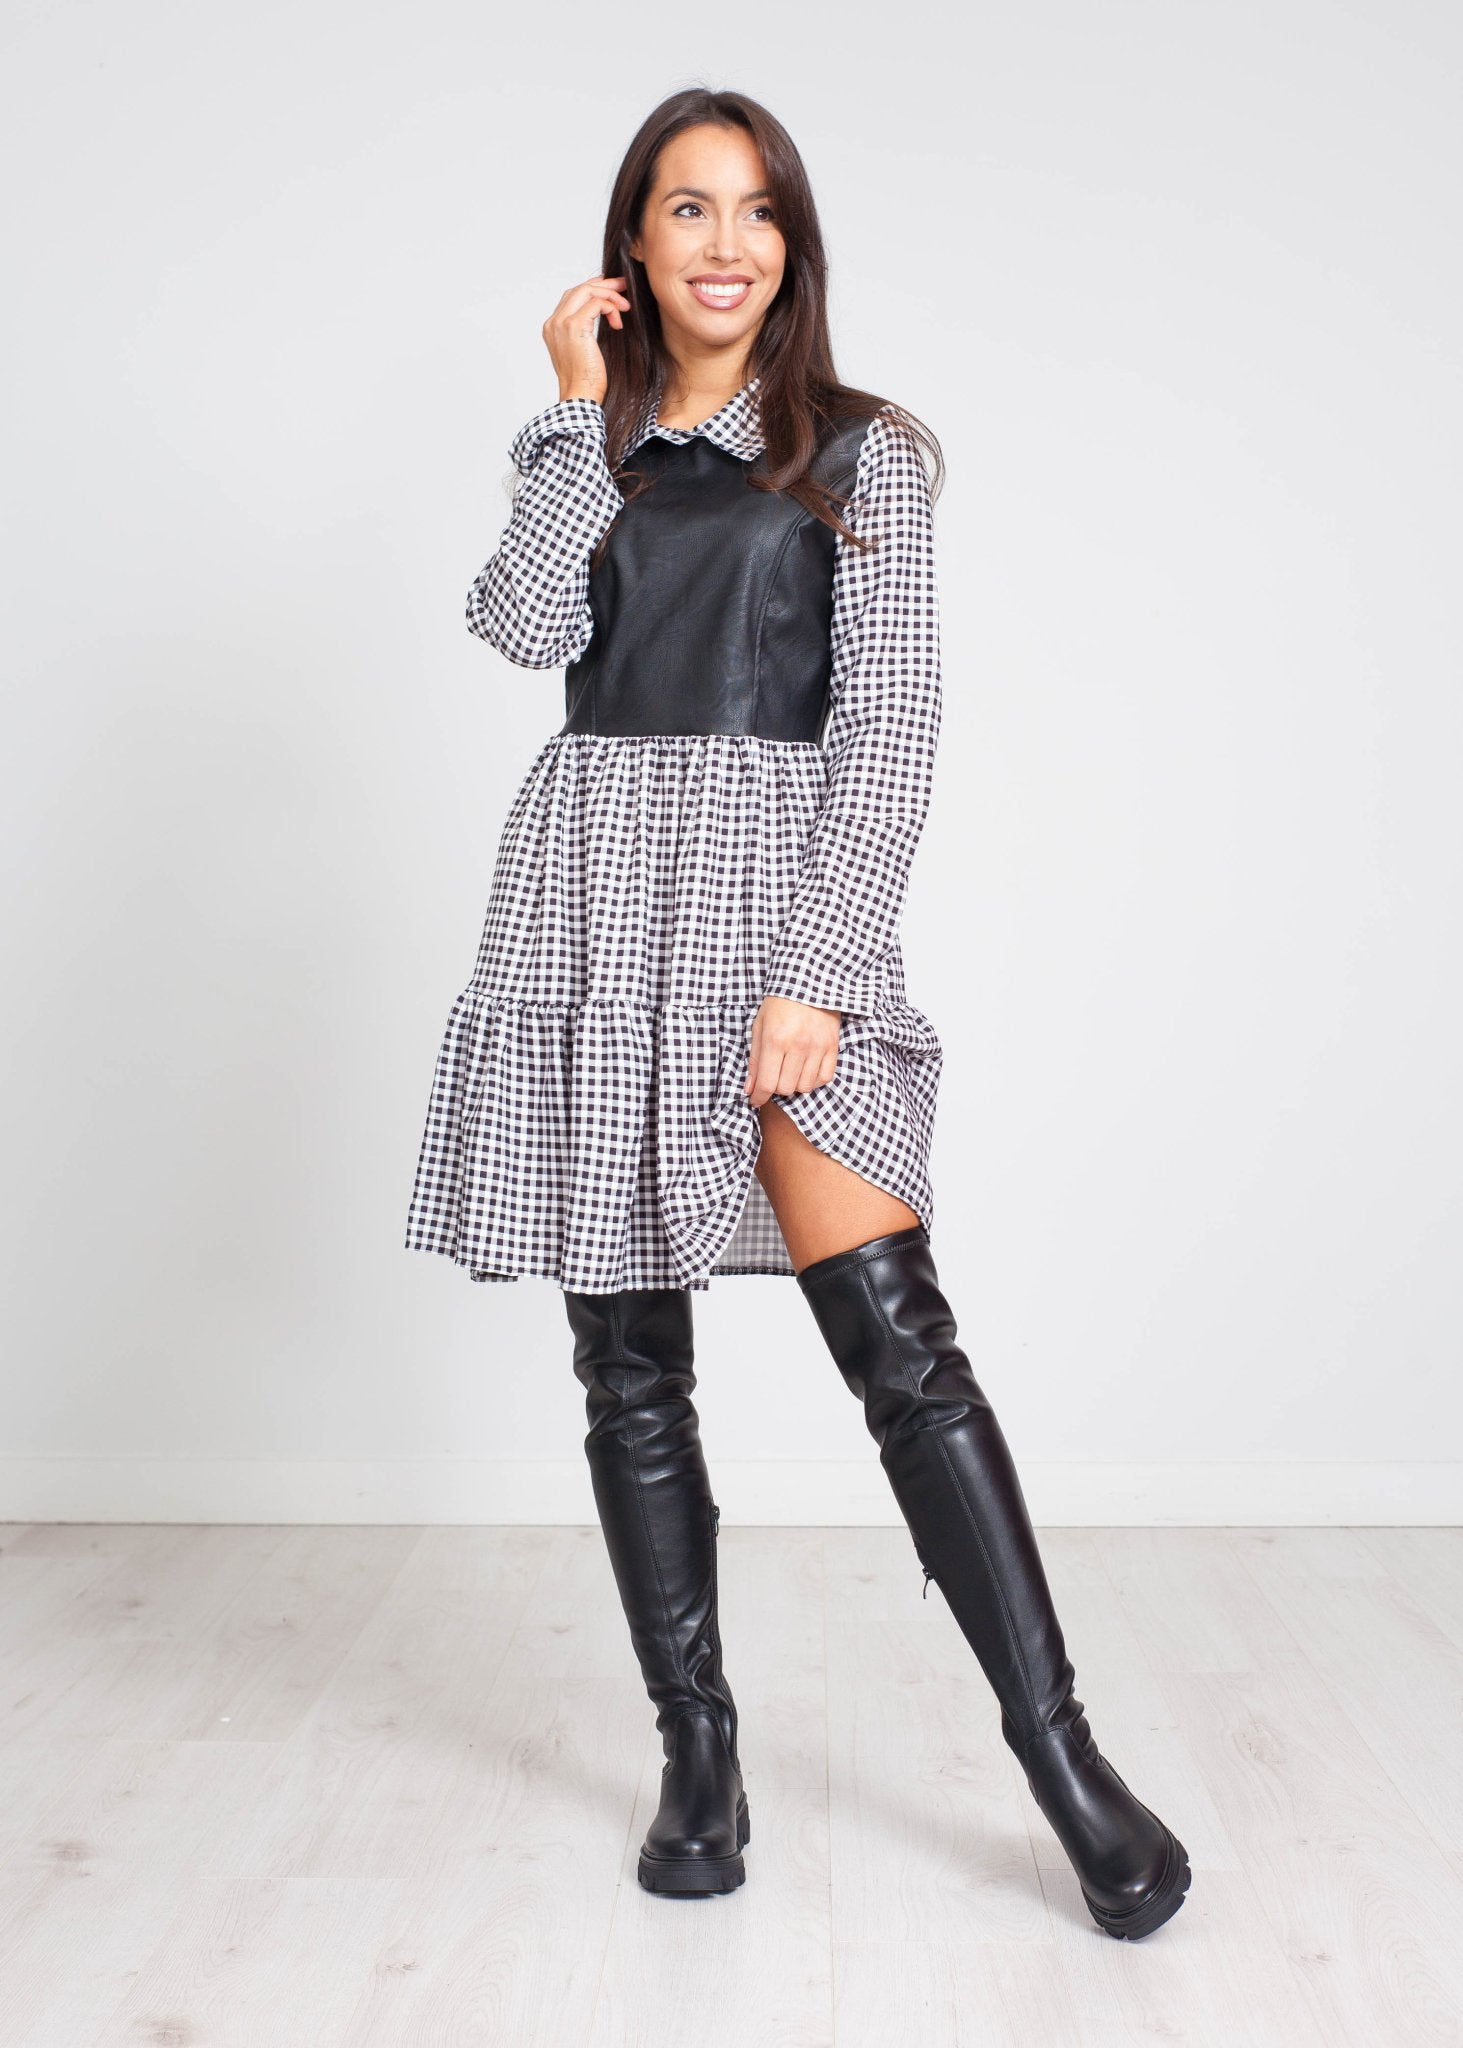 Priya Leather Mix Dress In Black Check - The Walk in Wardrobe